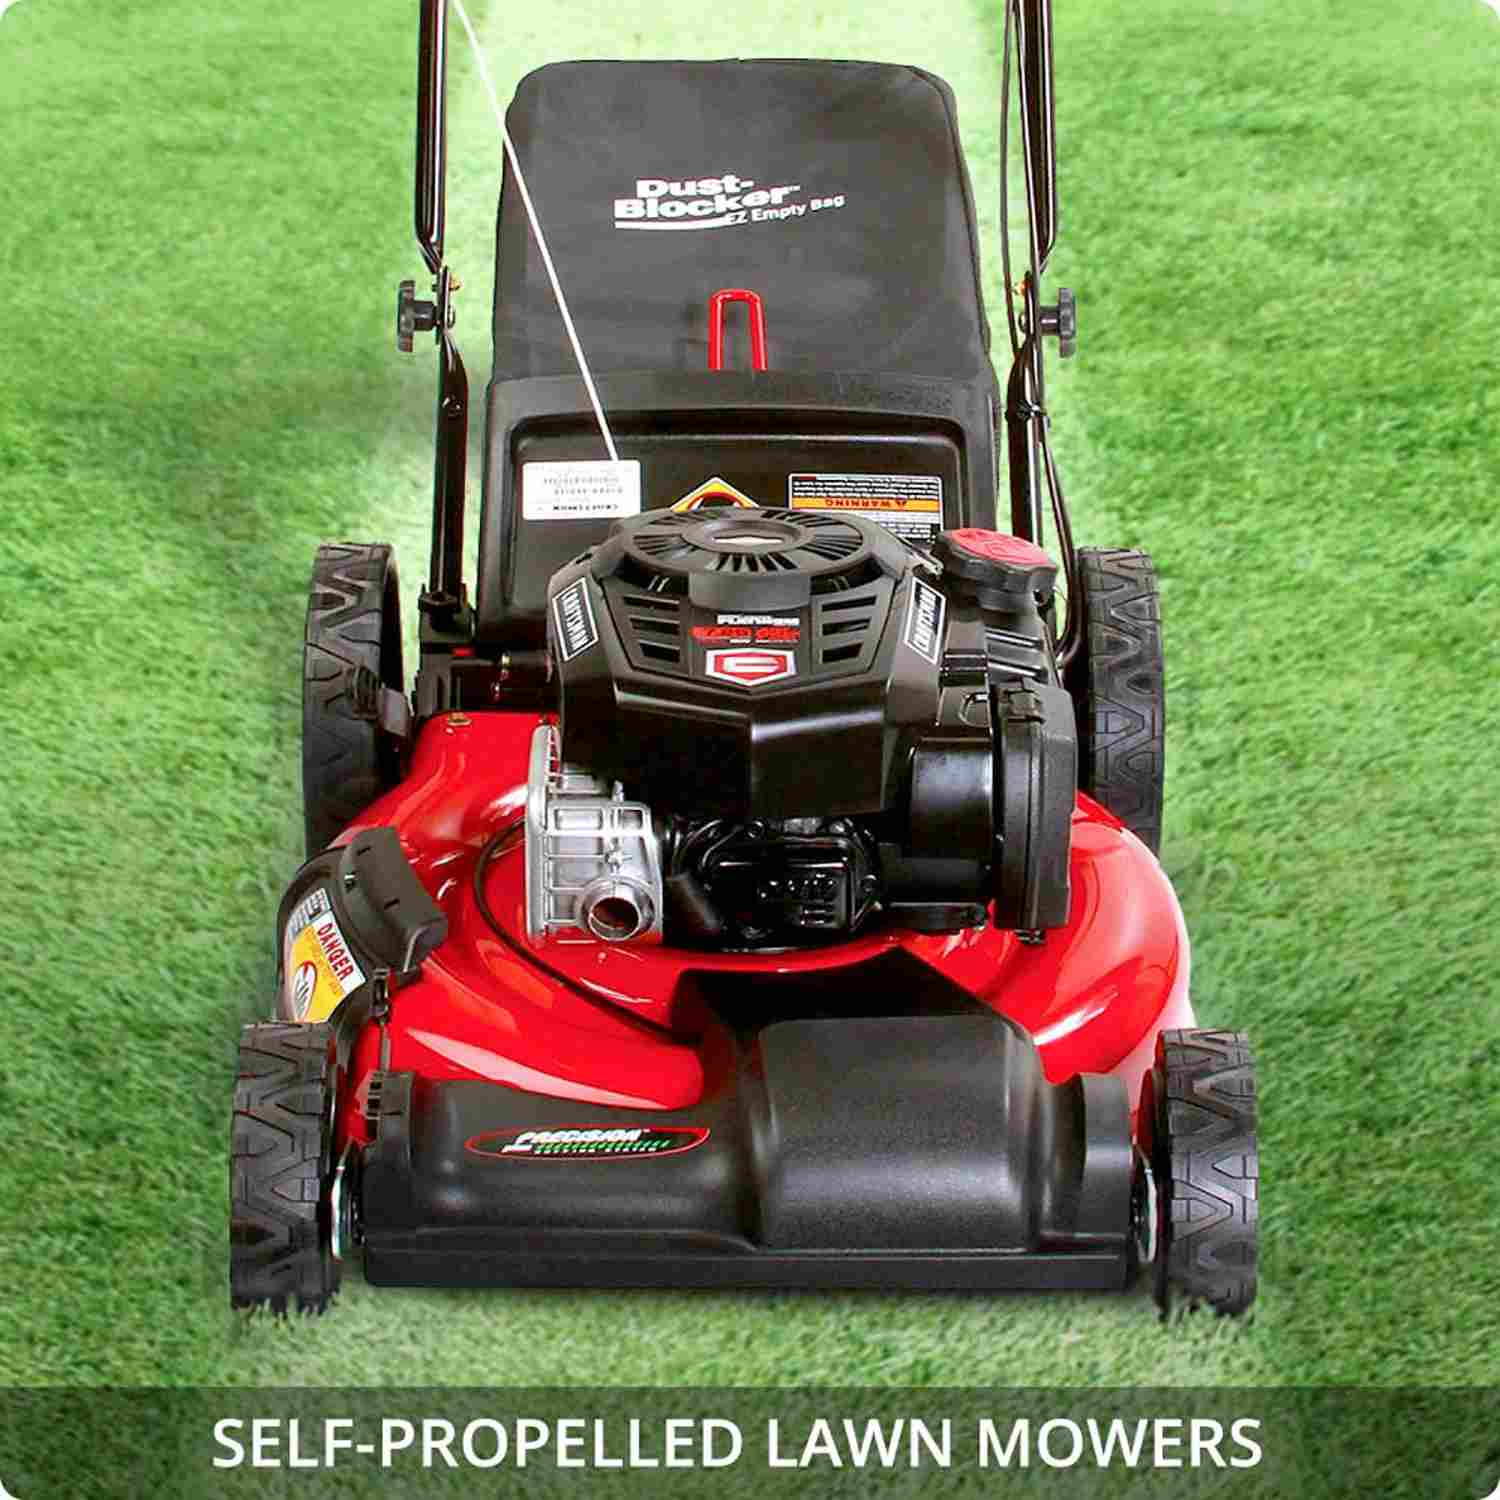 shop self propelled lawn mowers - Sears Lawn And Garden